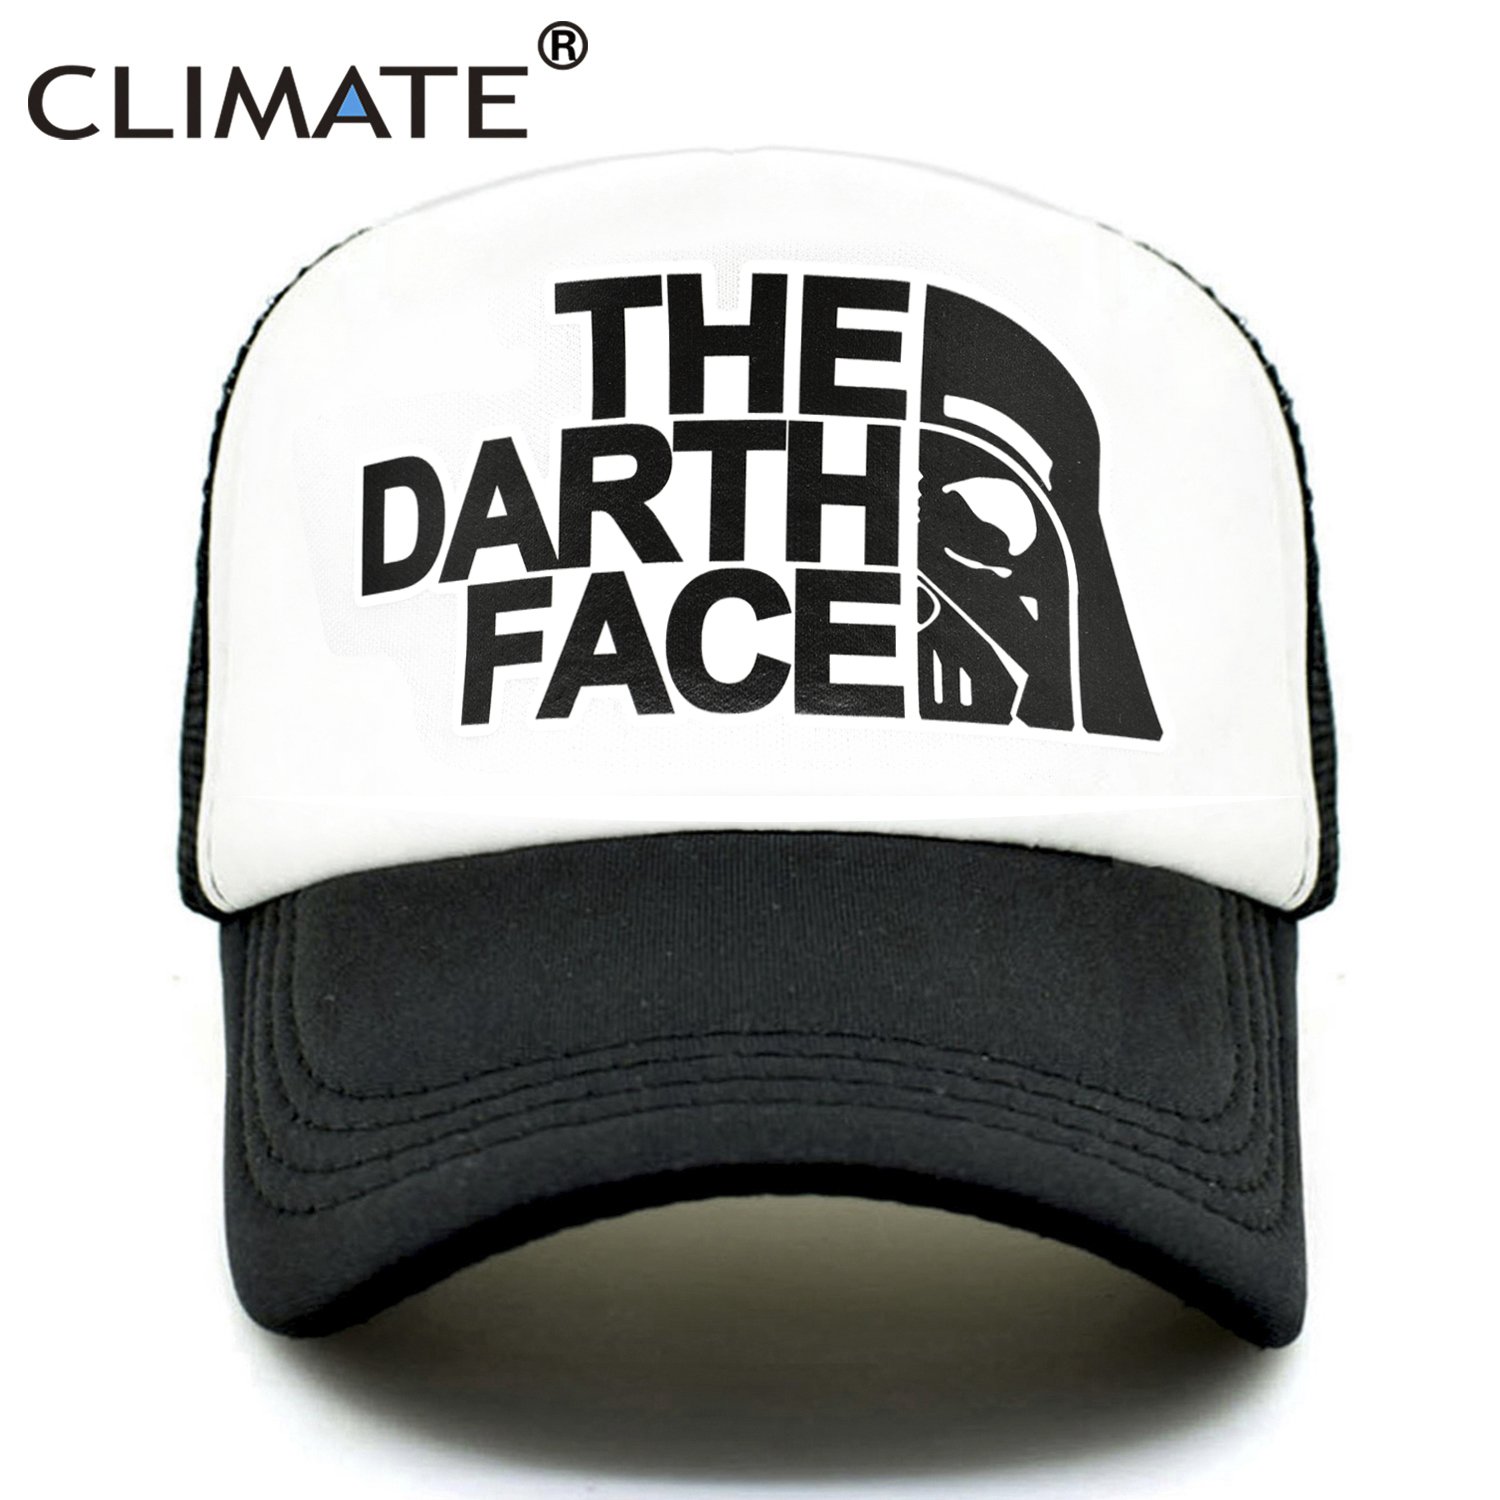 CLIMATE Darth Trucker Cap Star Darth Wars Funny Caps Men The Darth Face Hat Baseball Cap Cool Summer Mesh Net Cap Hat for Men(China)